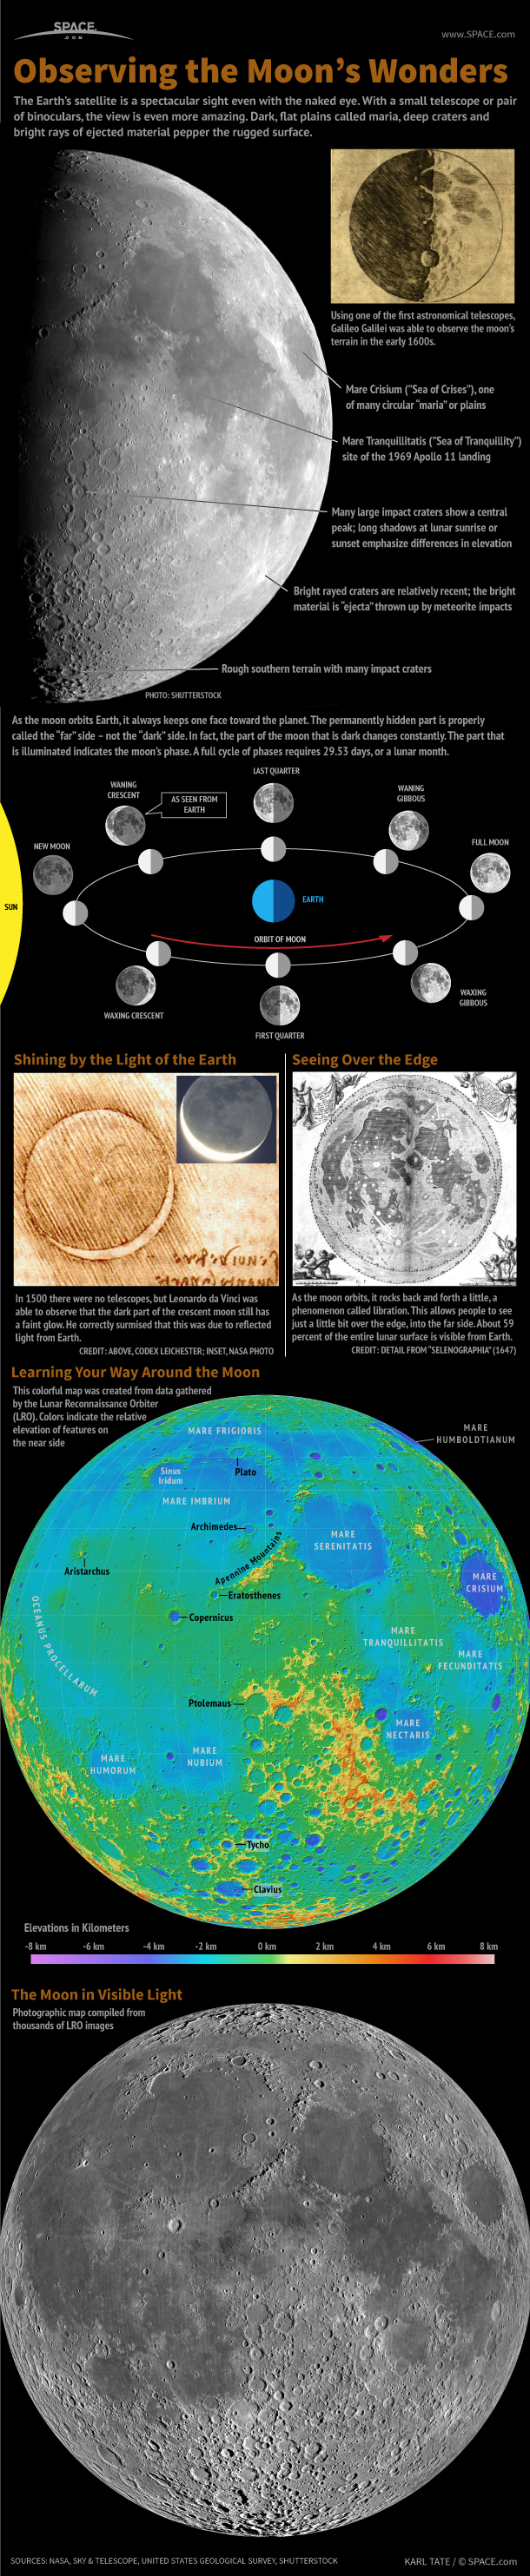 How to Observe the Moon (Infographic)